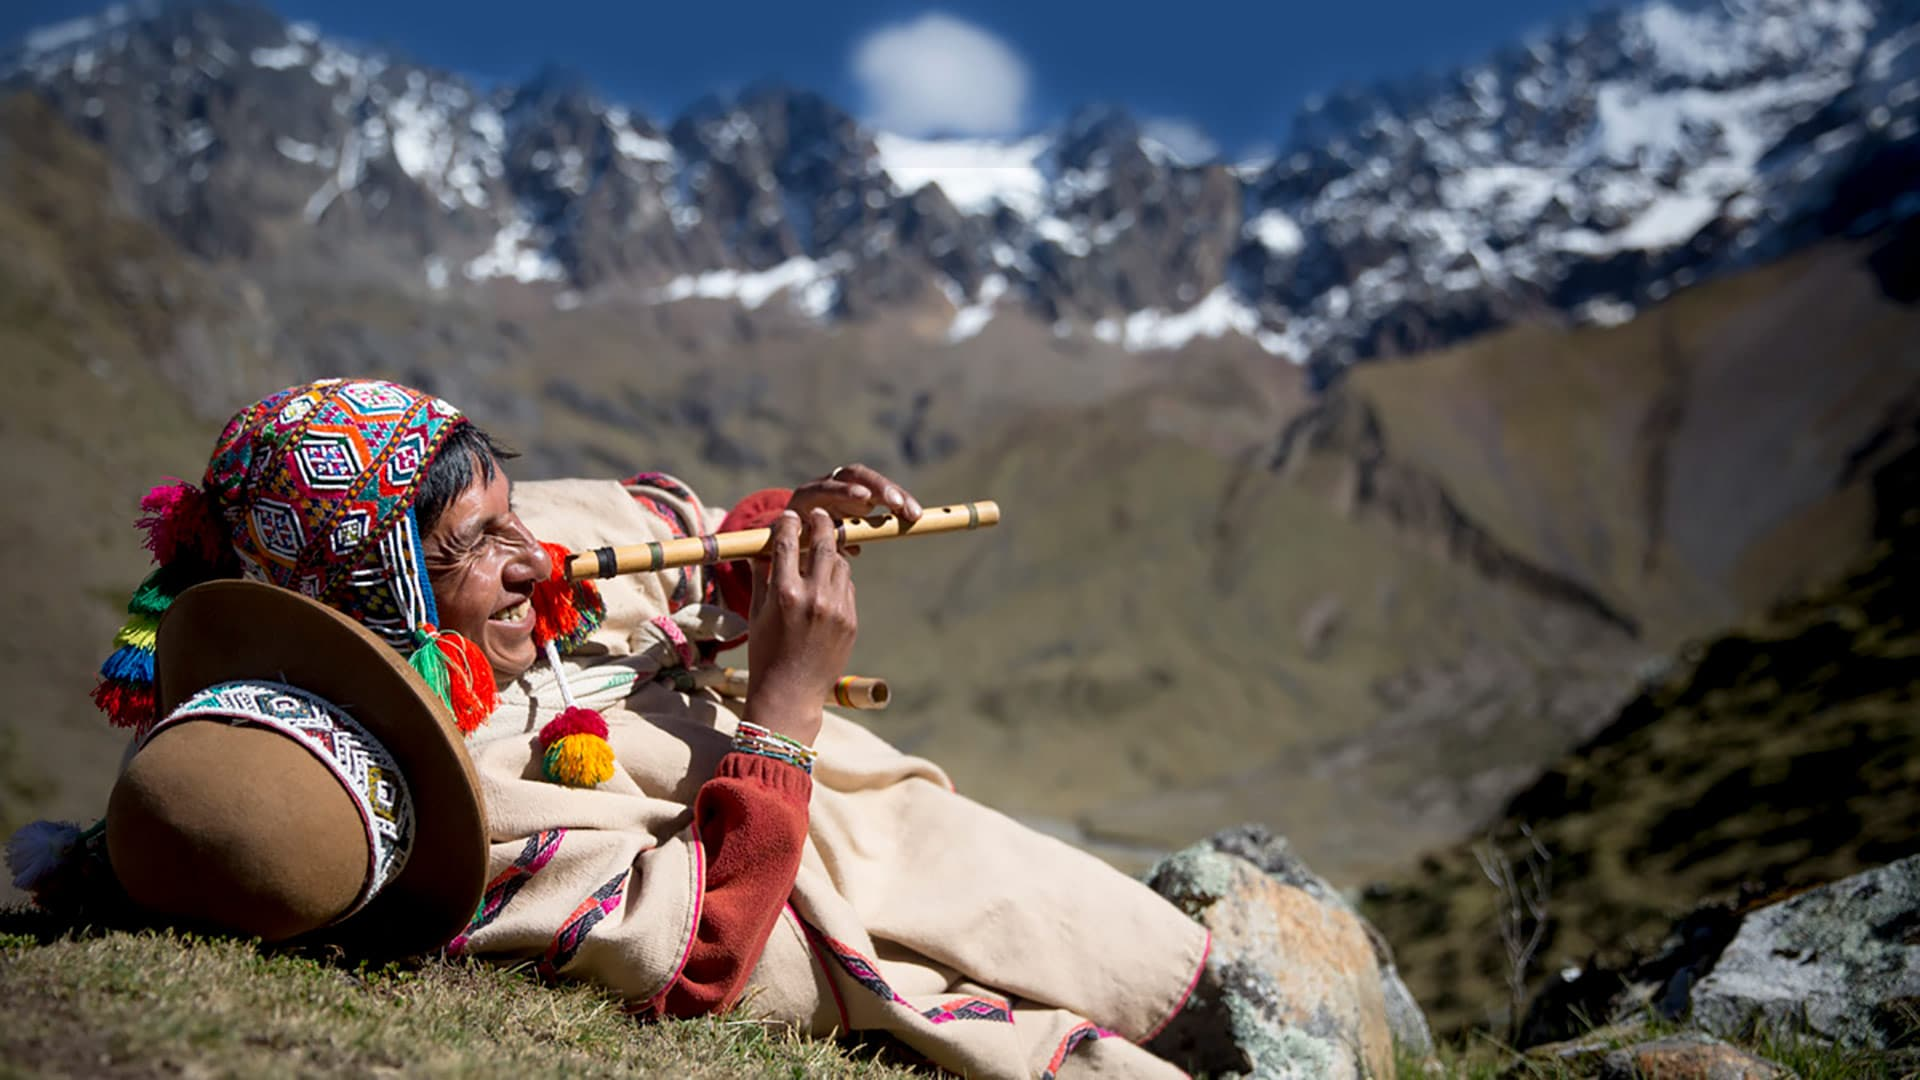 Peruvian flute player in Peru, luxury ecotourism is romantic